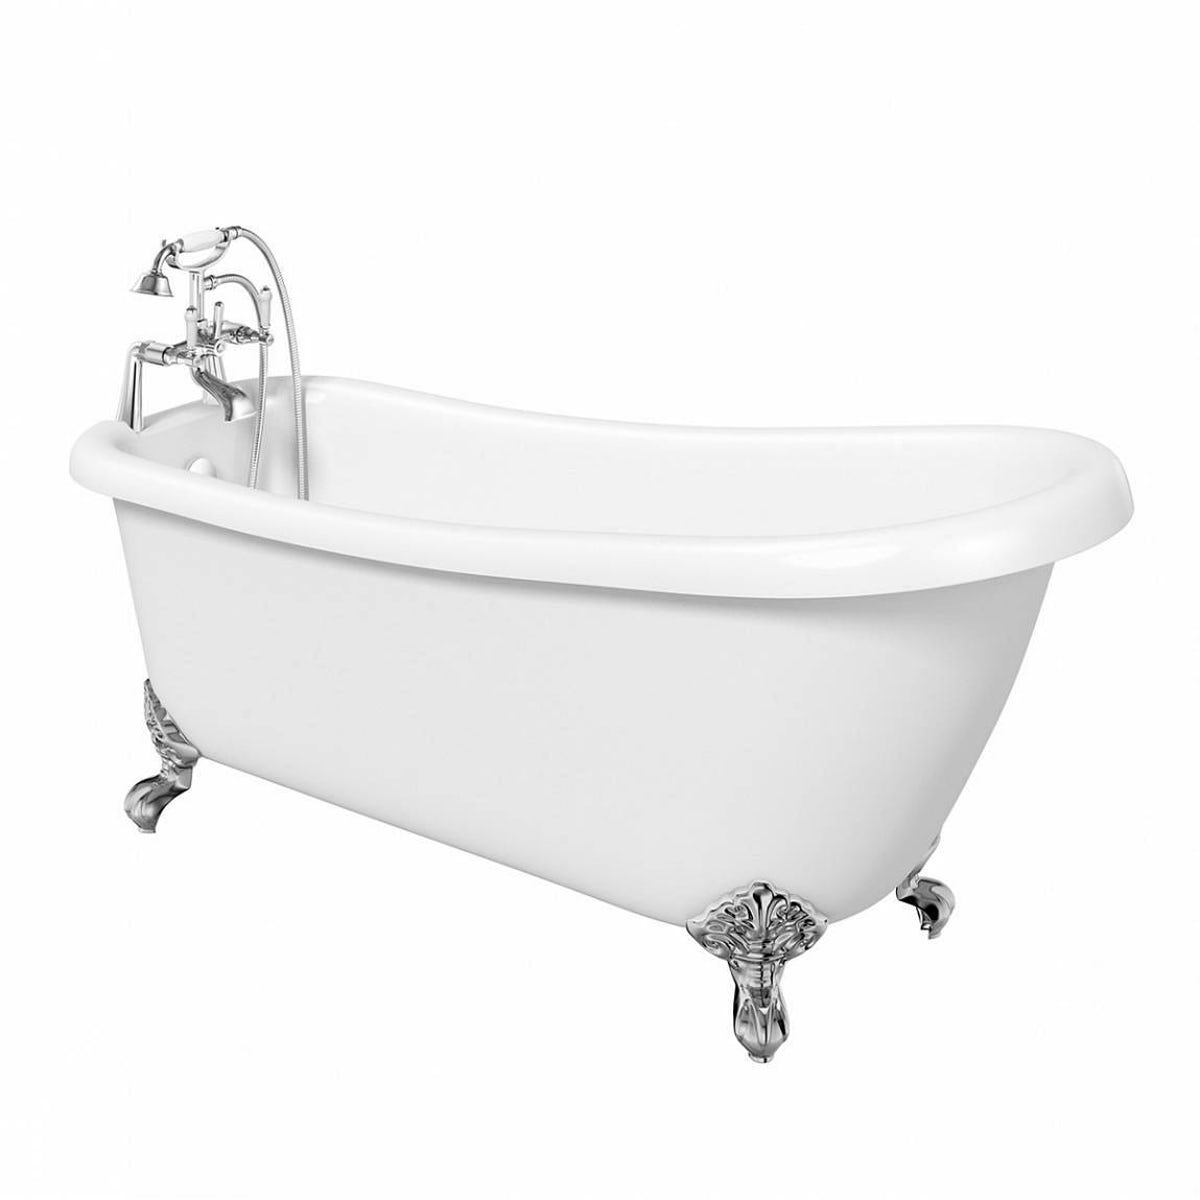 The Bath Co Winchester Slipper Bath With Ball Feet Offer